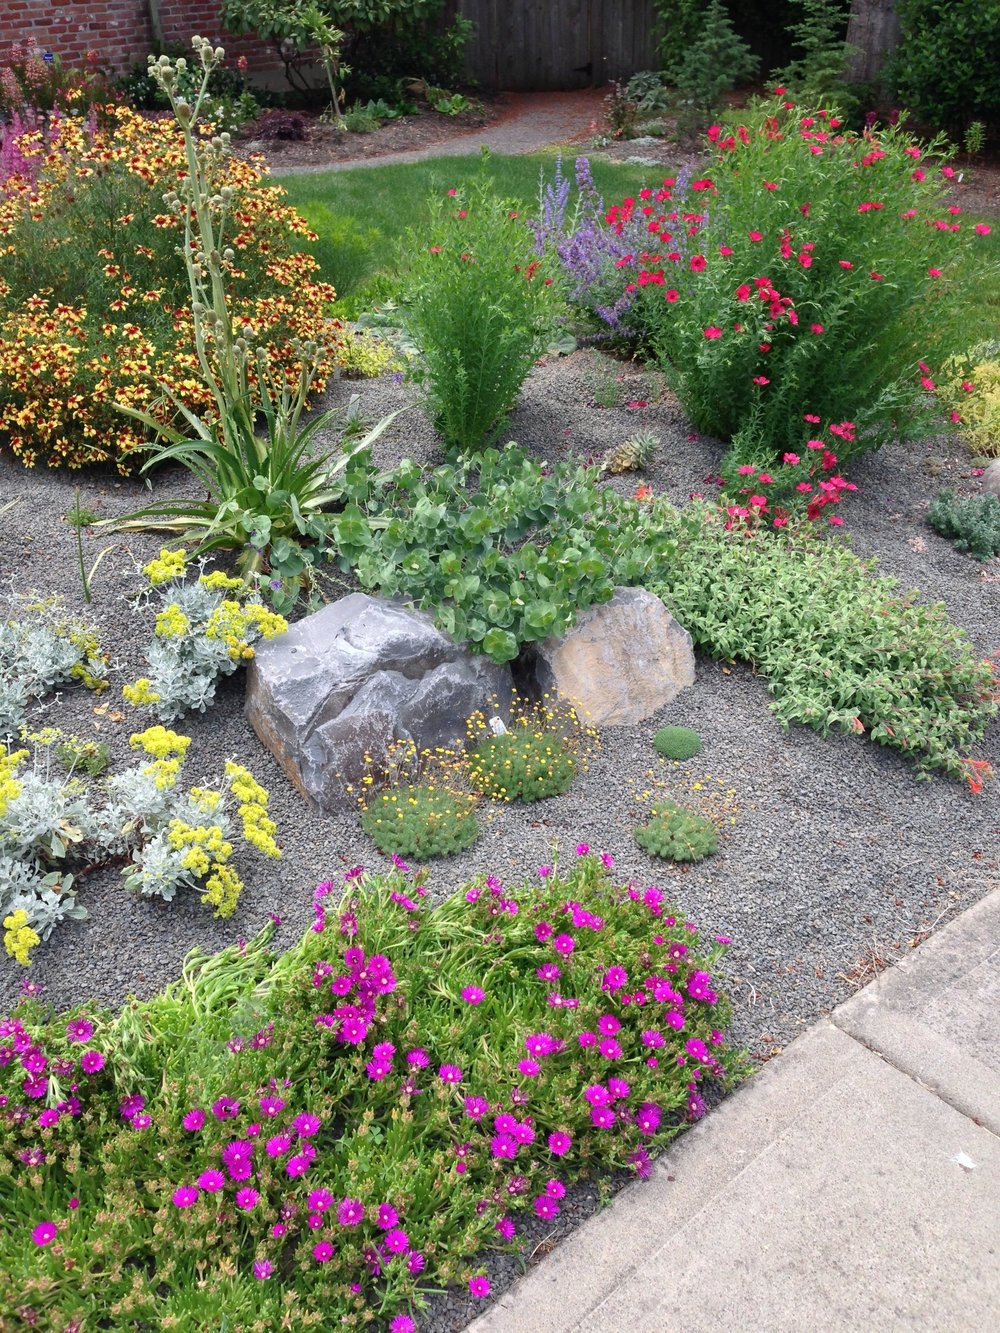 2016-07-05 13.33h Myers II fyd afters (lots Jacque plants), boulders dry bed gravel.jpg